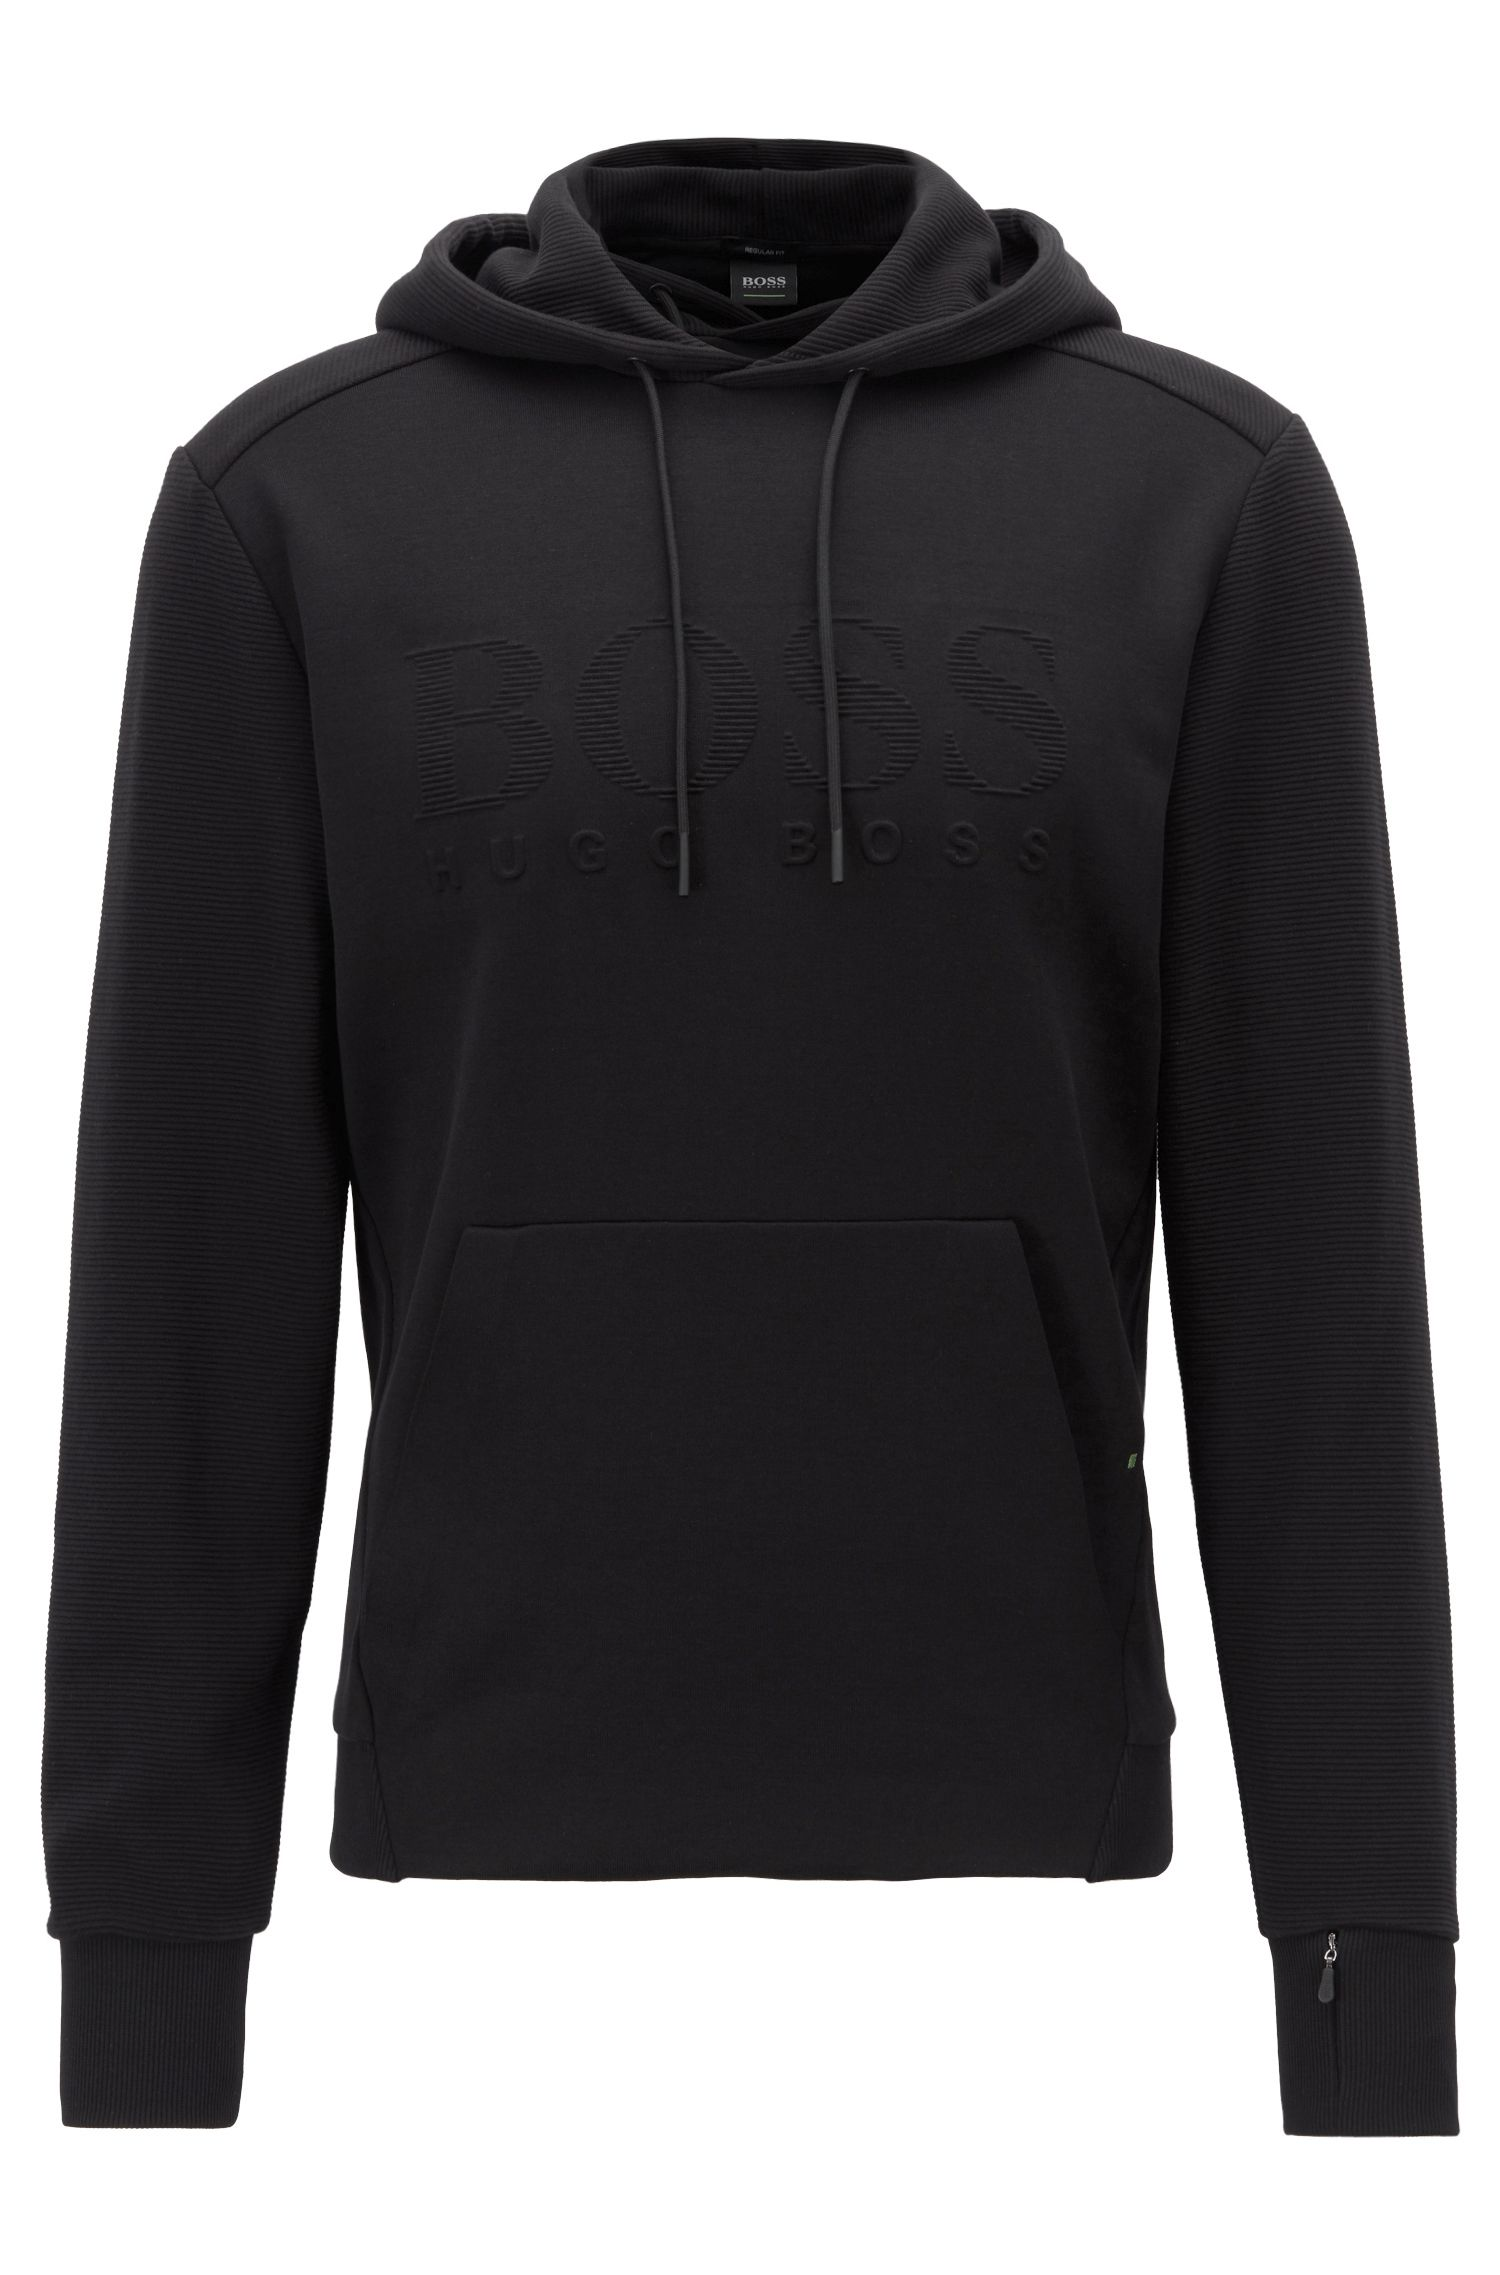 Hooded logo sweatshirt with zipped cuff pocket, Black